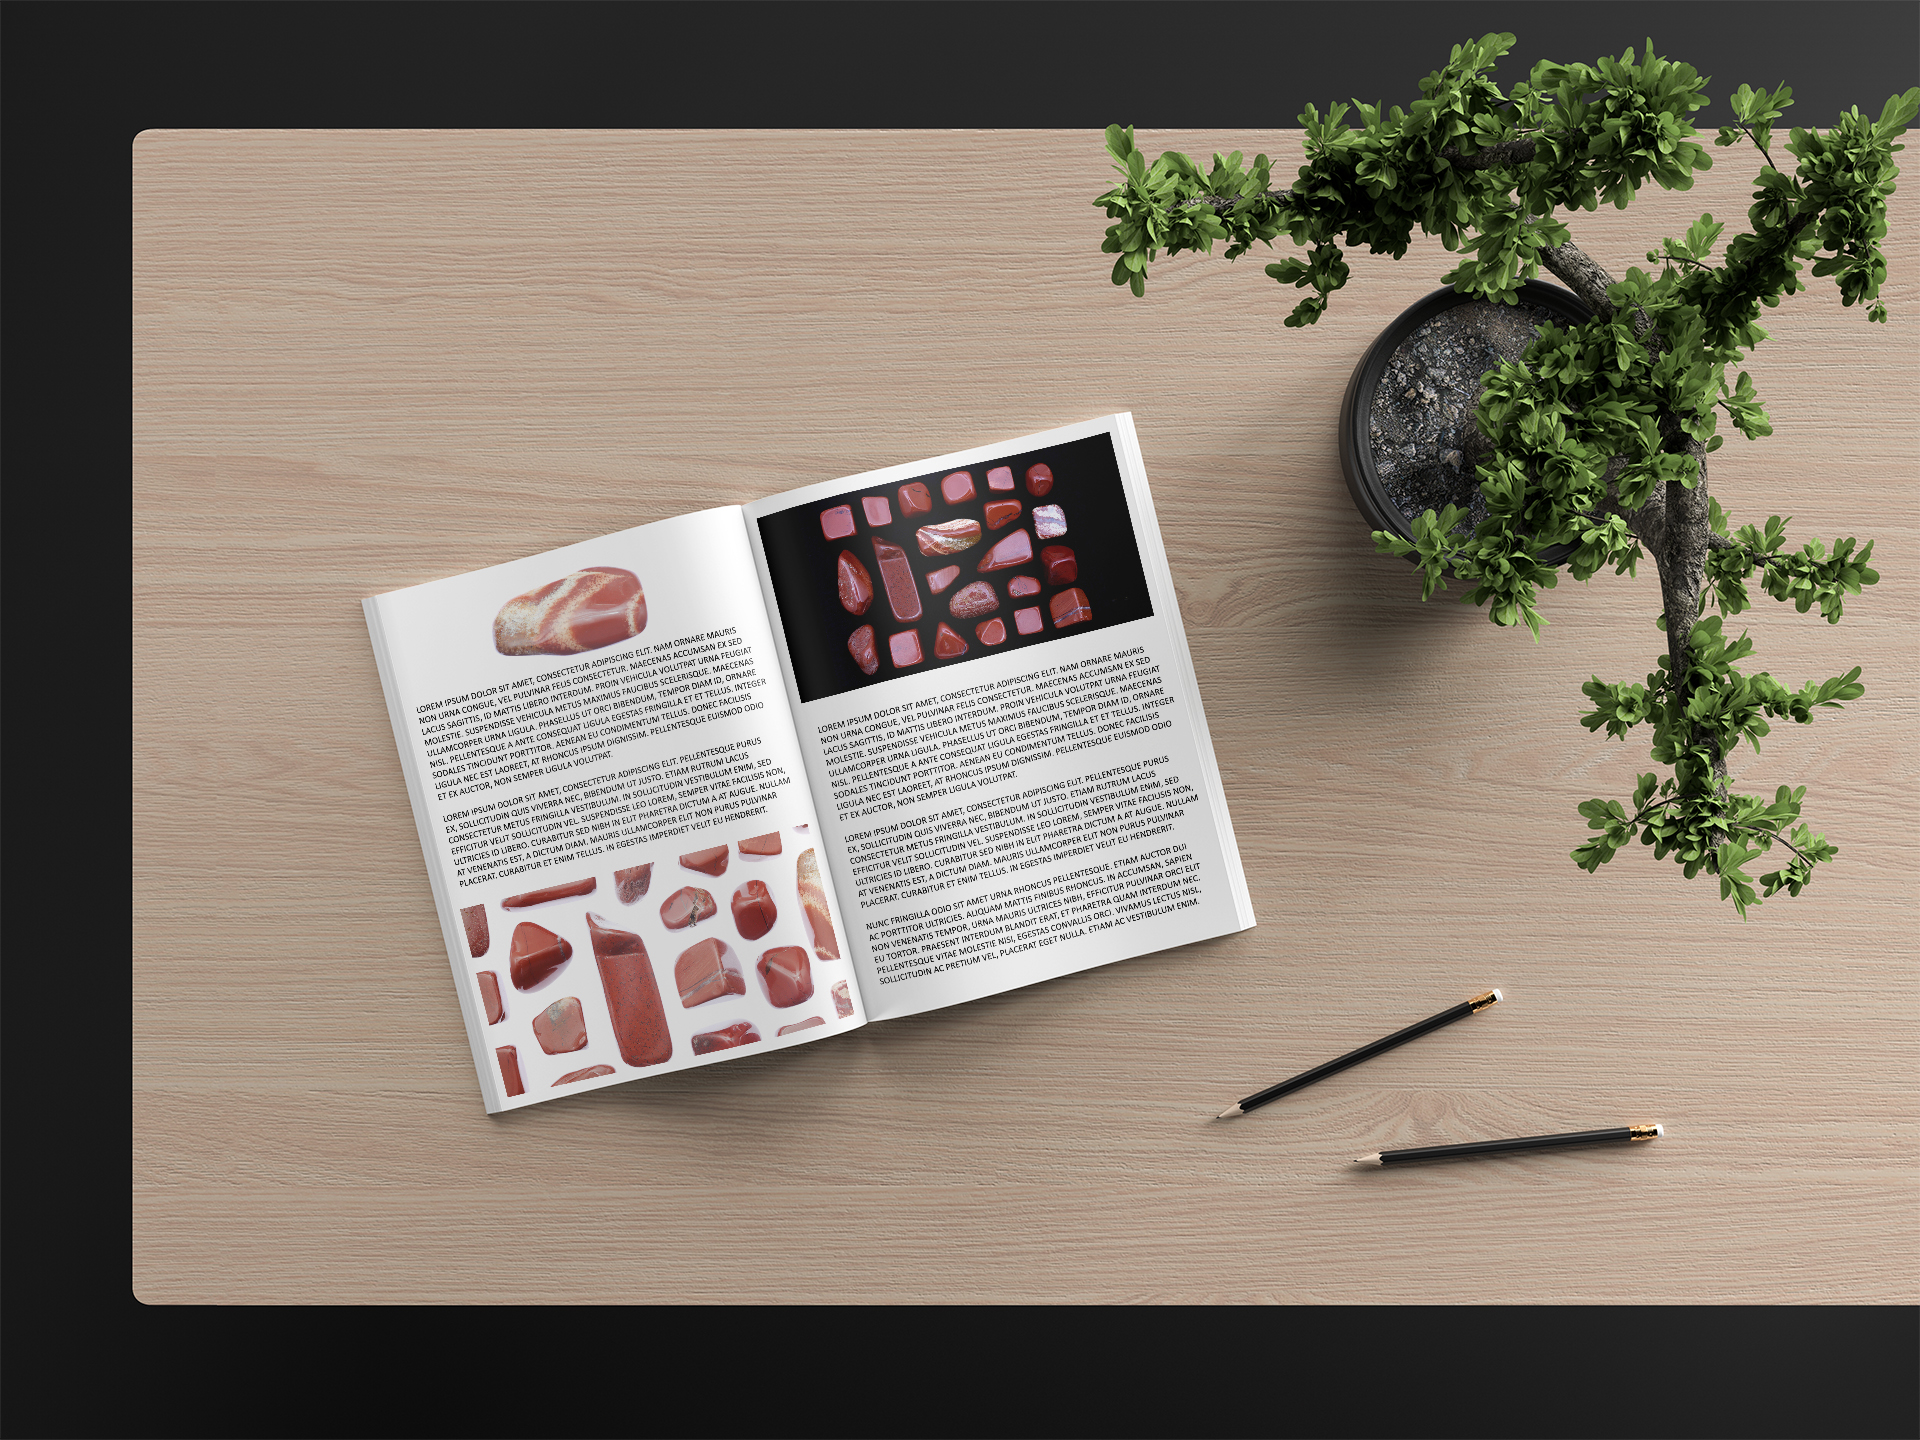 Red Jasper Background Textures Modern Magazine Article Illustrations Preview